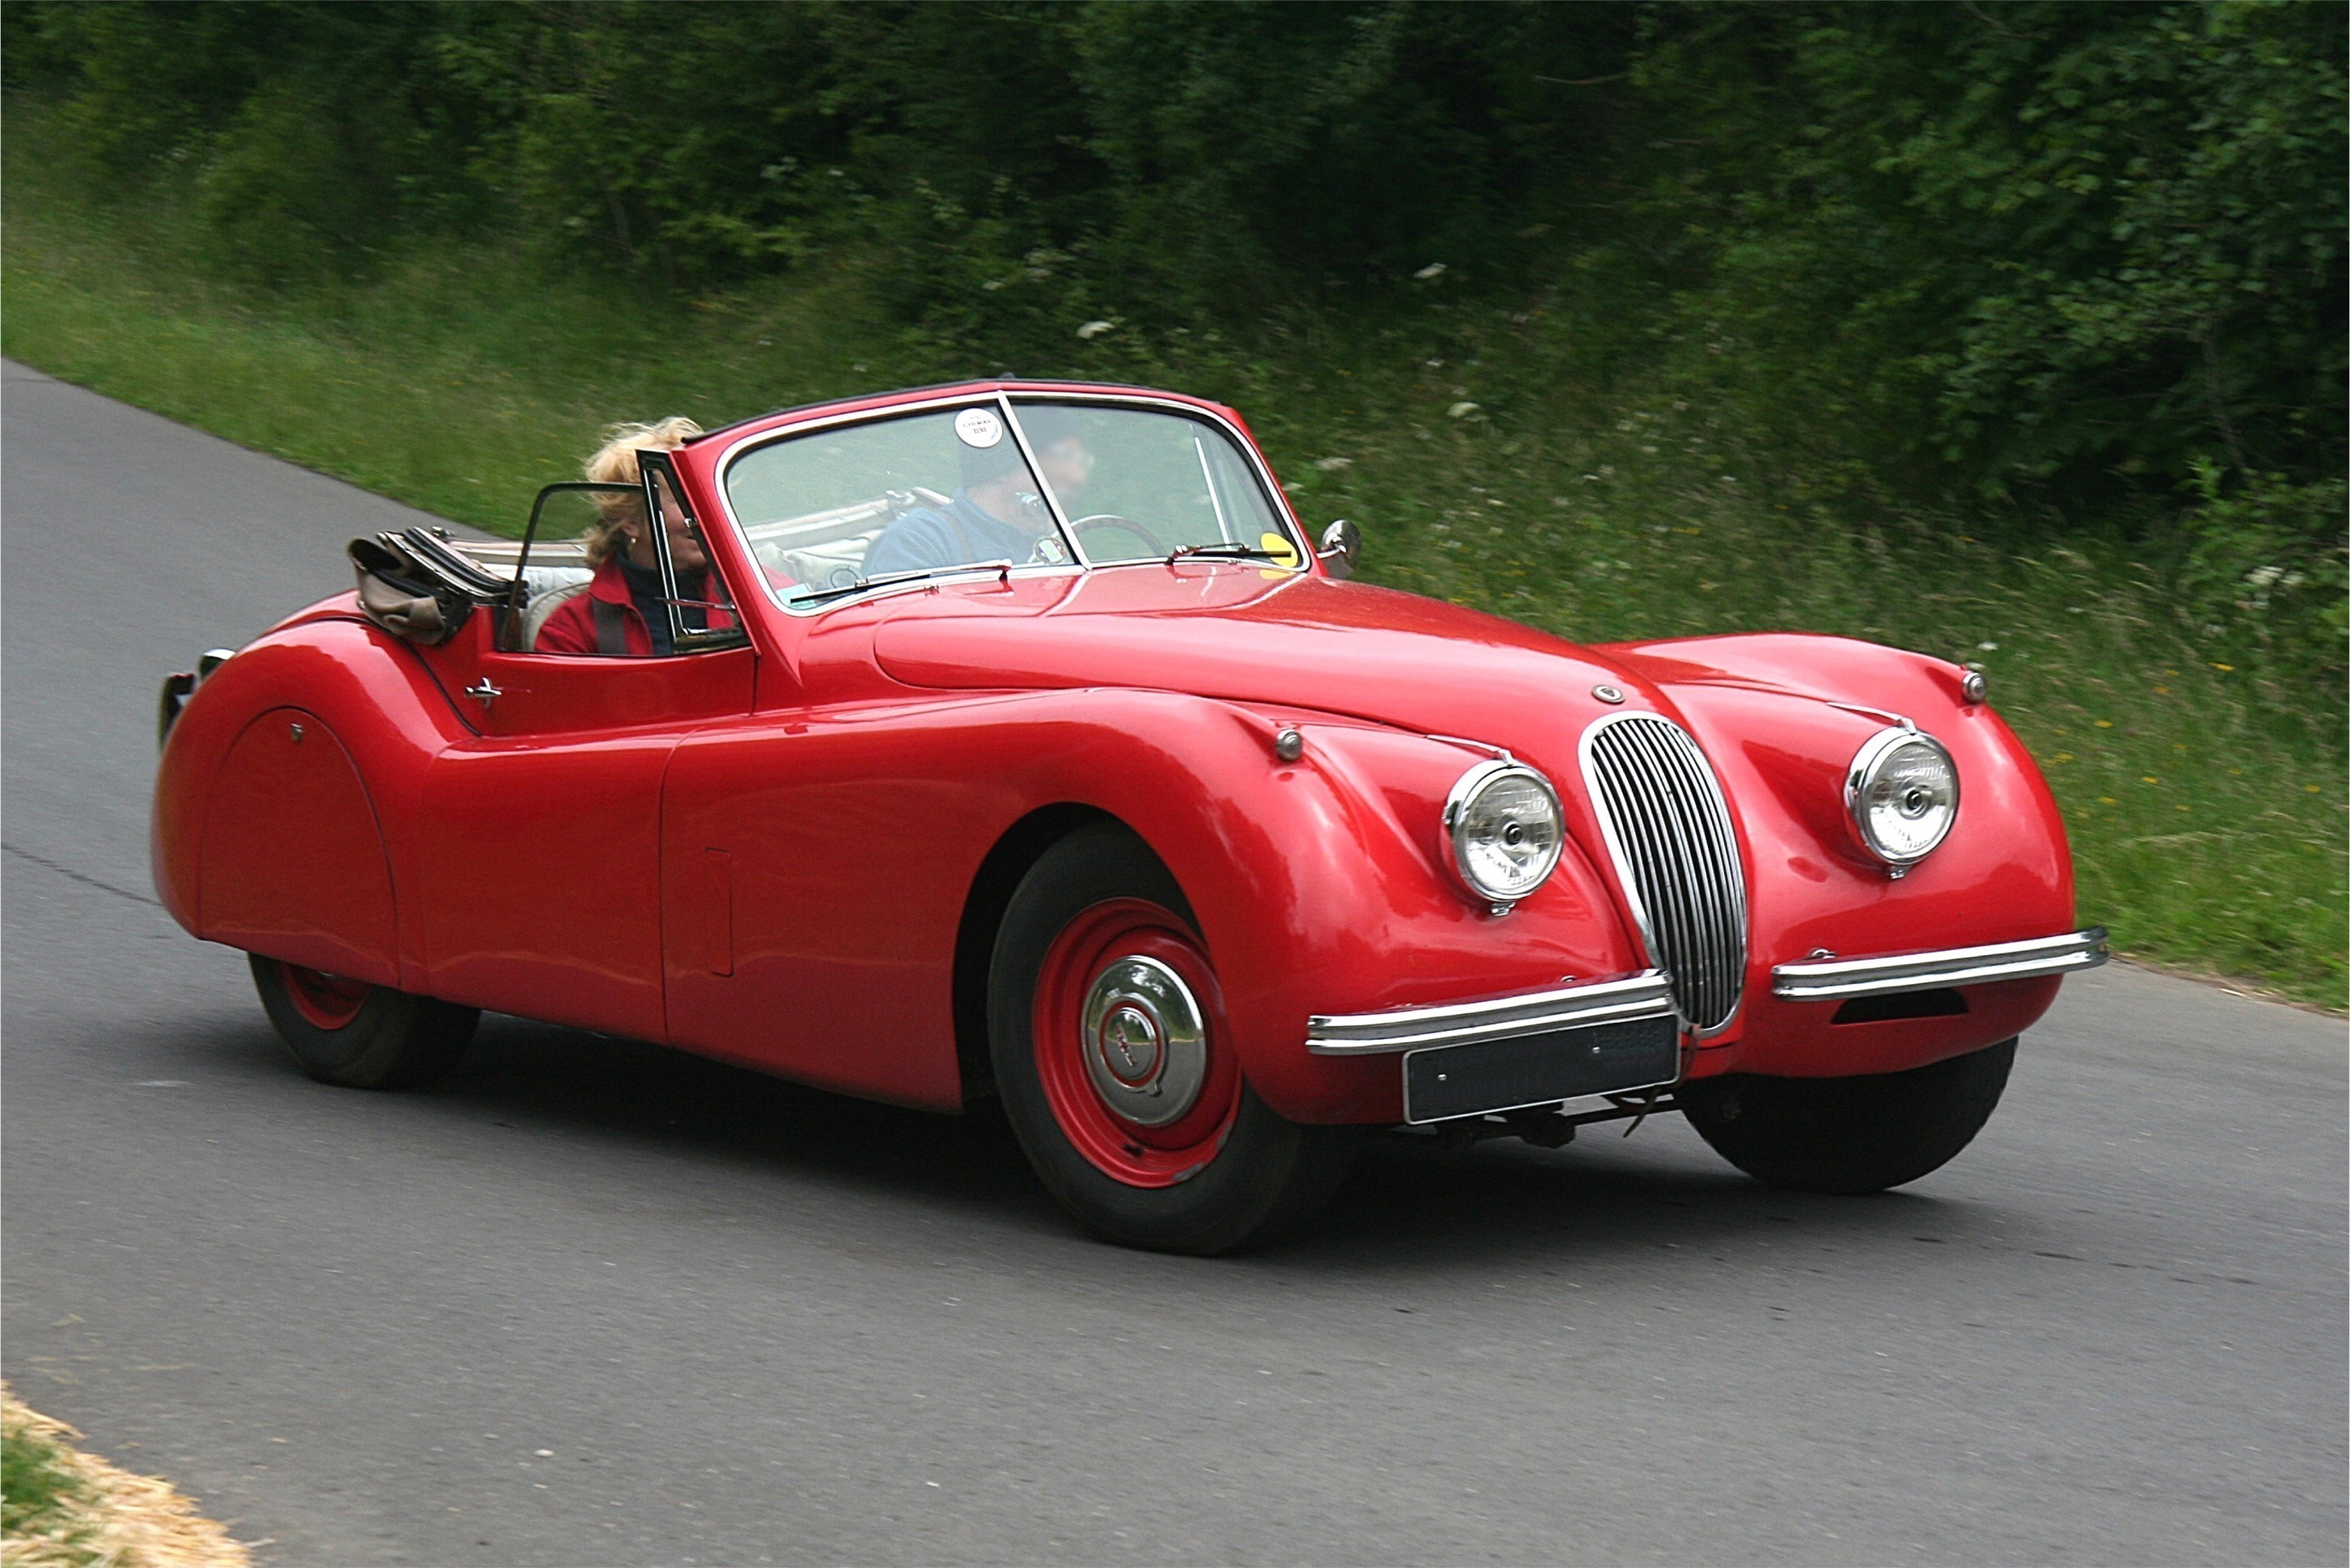 Jaguar Xk 120 A Classic Sports Car With Class Sports